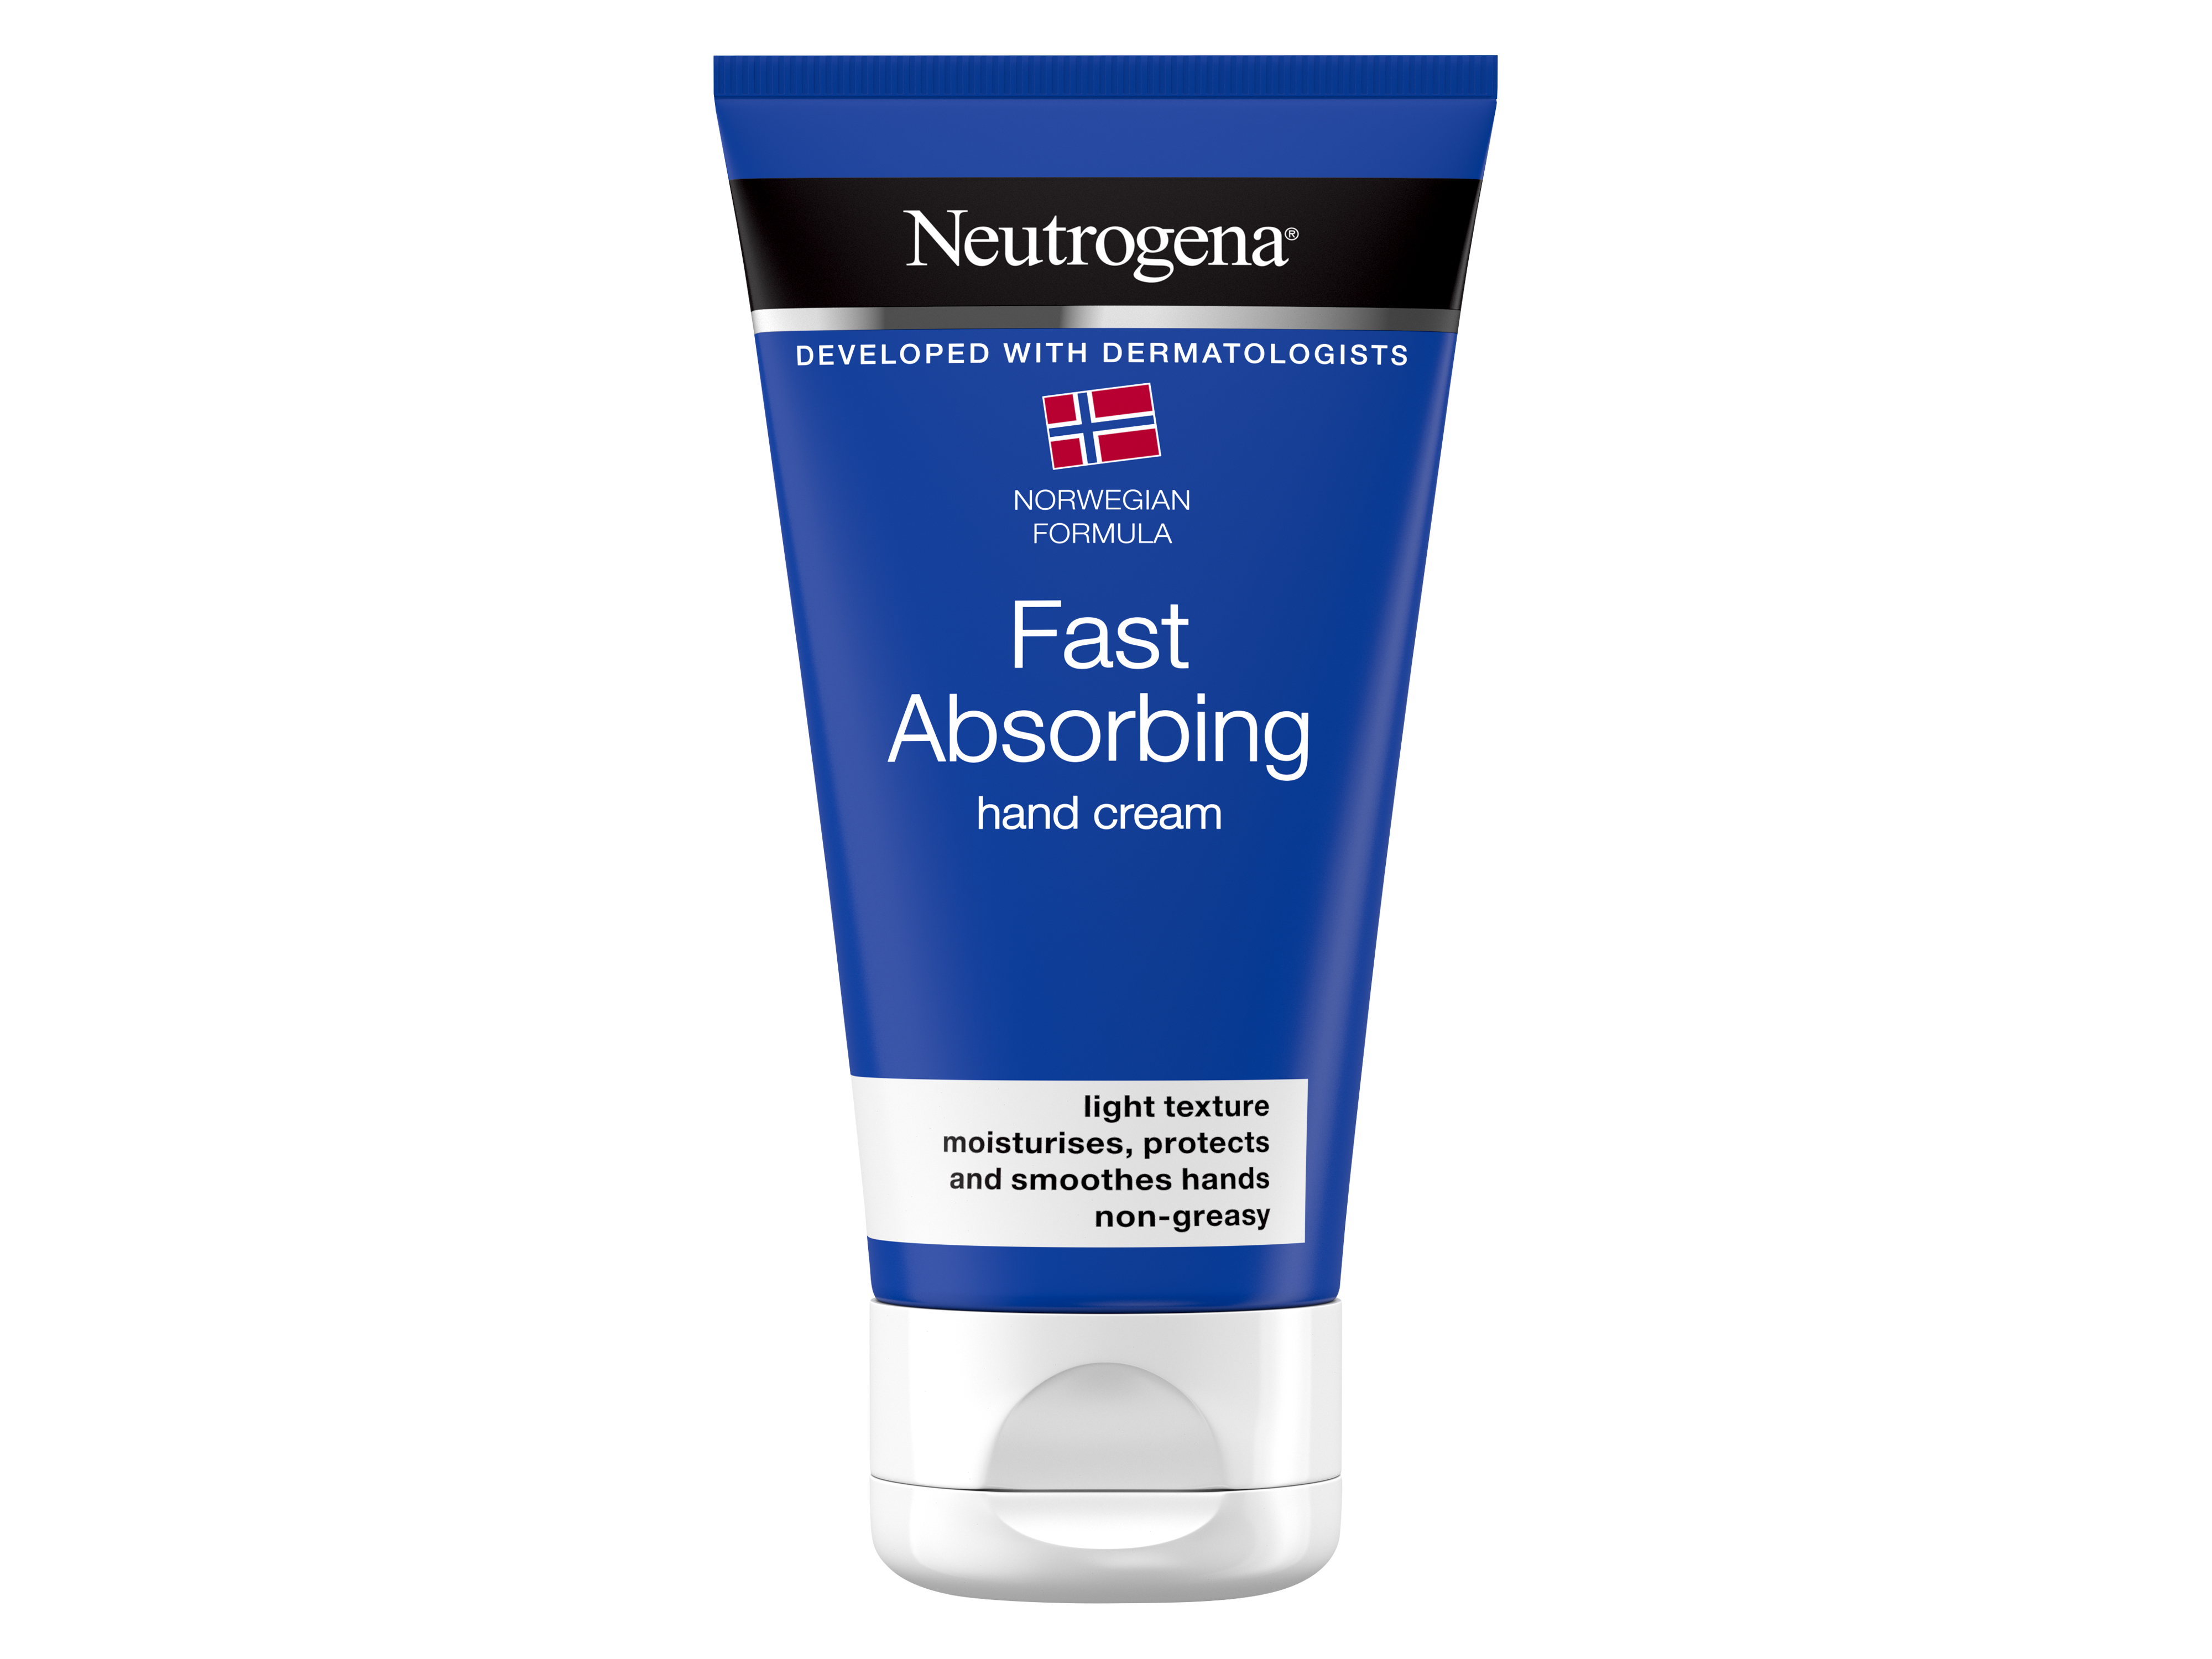 Neutrogena Norwegian Formula Fast Absorbing Hand Cream m/p, 75 ml